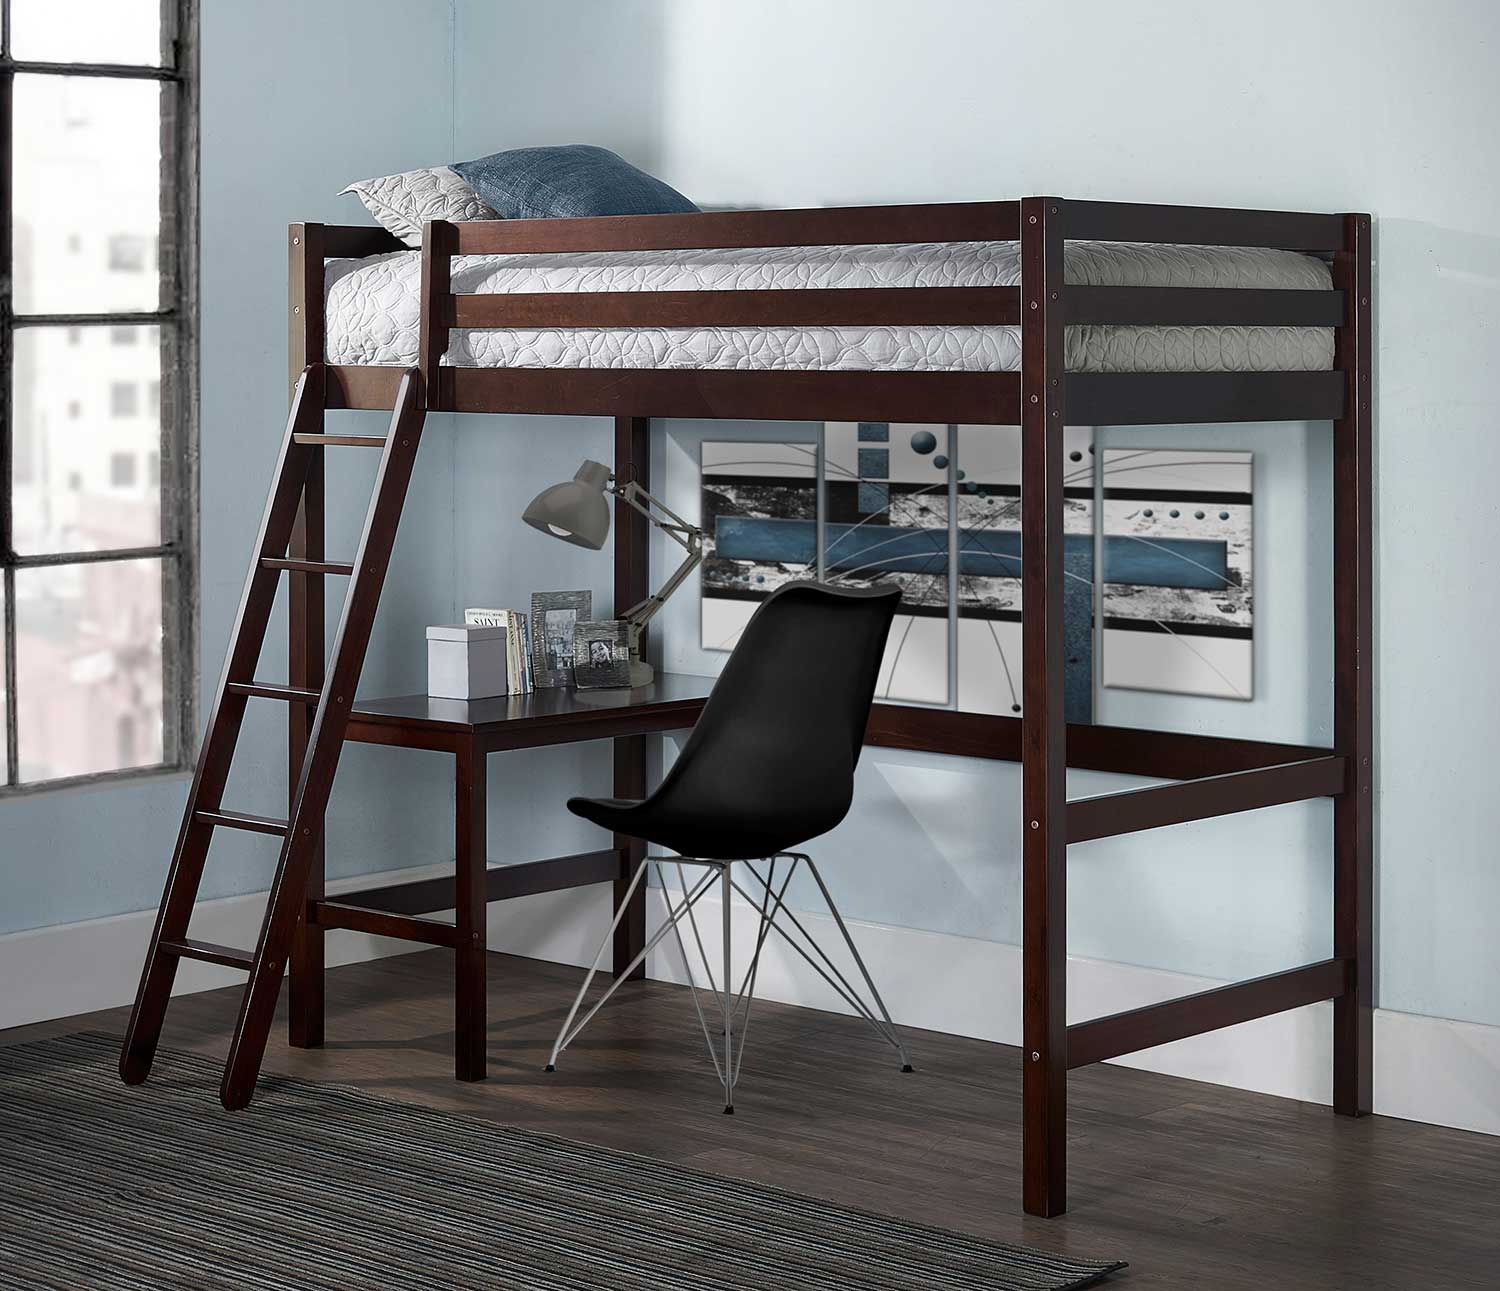 Hillsdale Caspian Twin Study Loft Bed With Chair - Chocolate